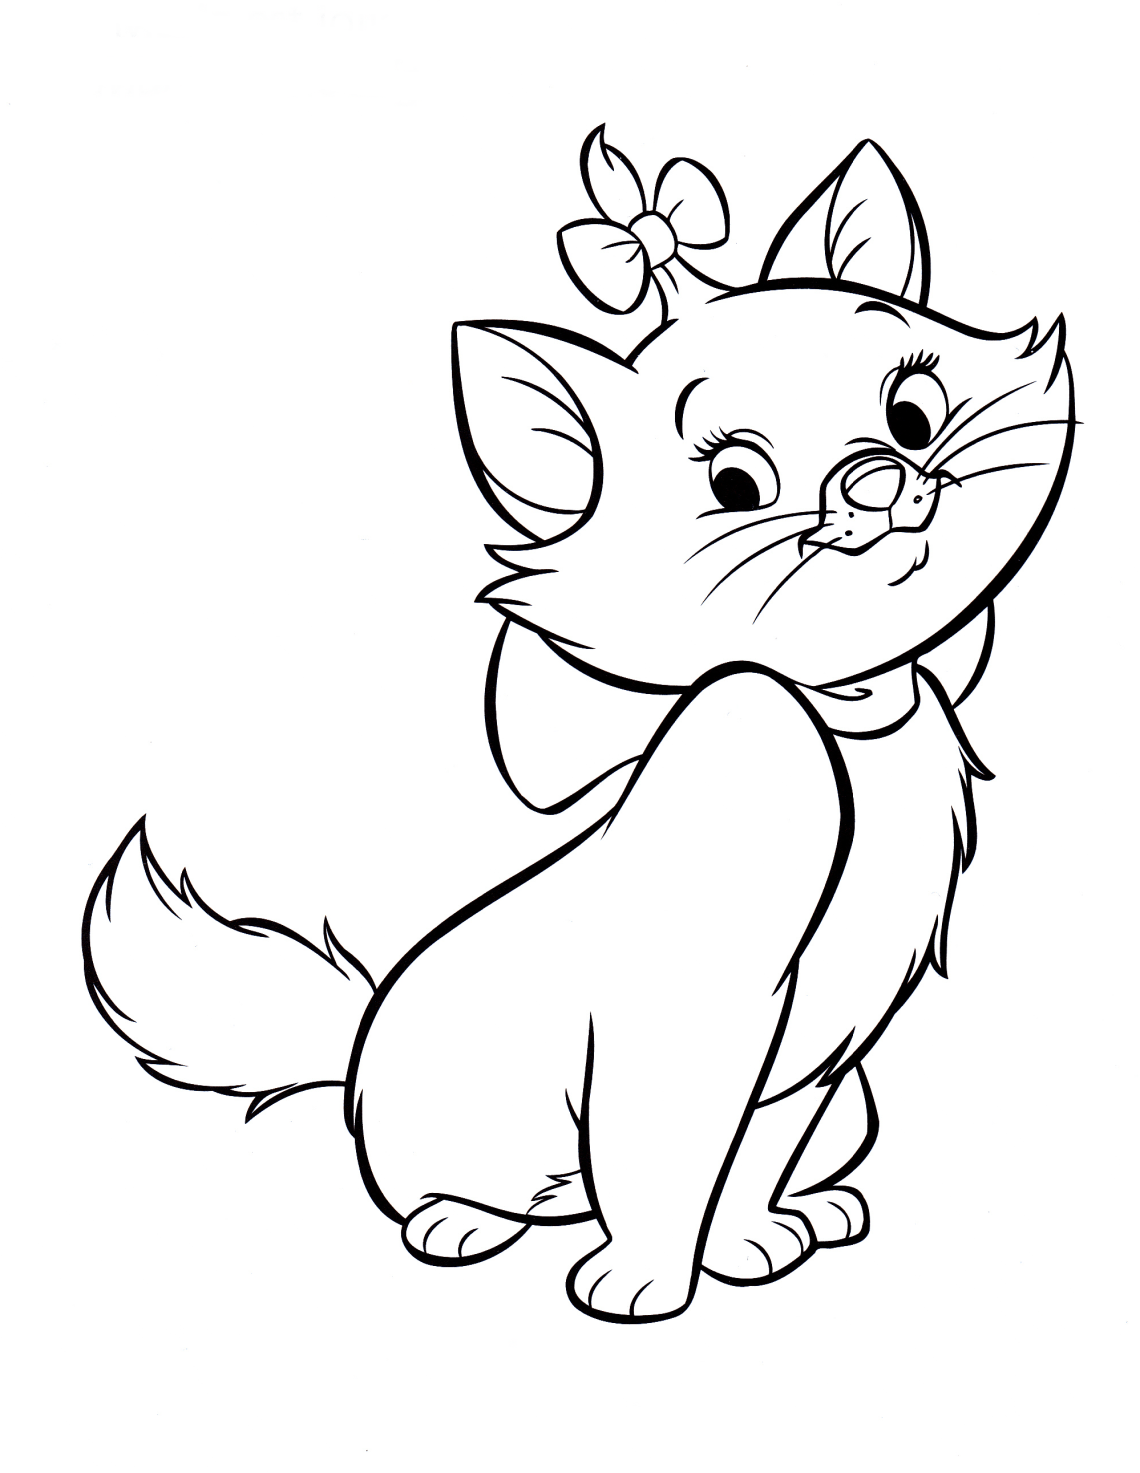 Walt Disney Coloring Pages - Marie - Walt Disney ...   colouring pages disney characters